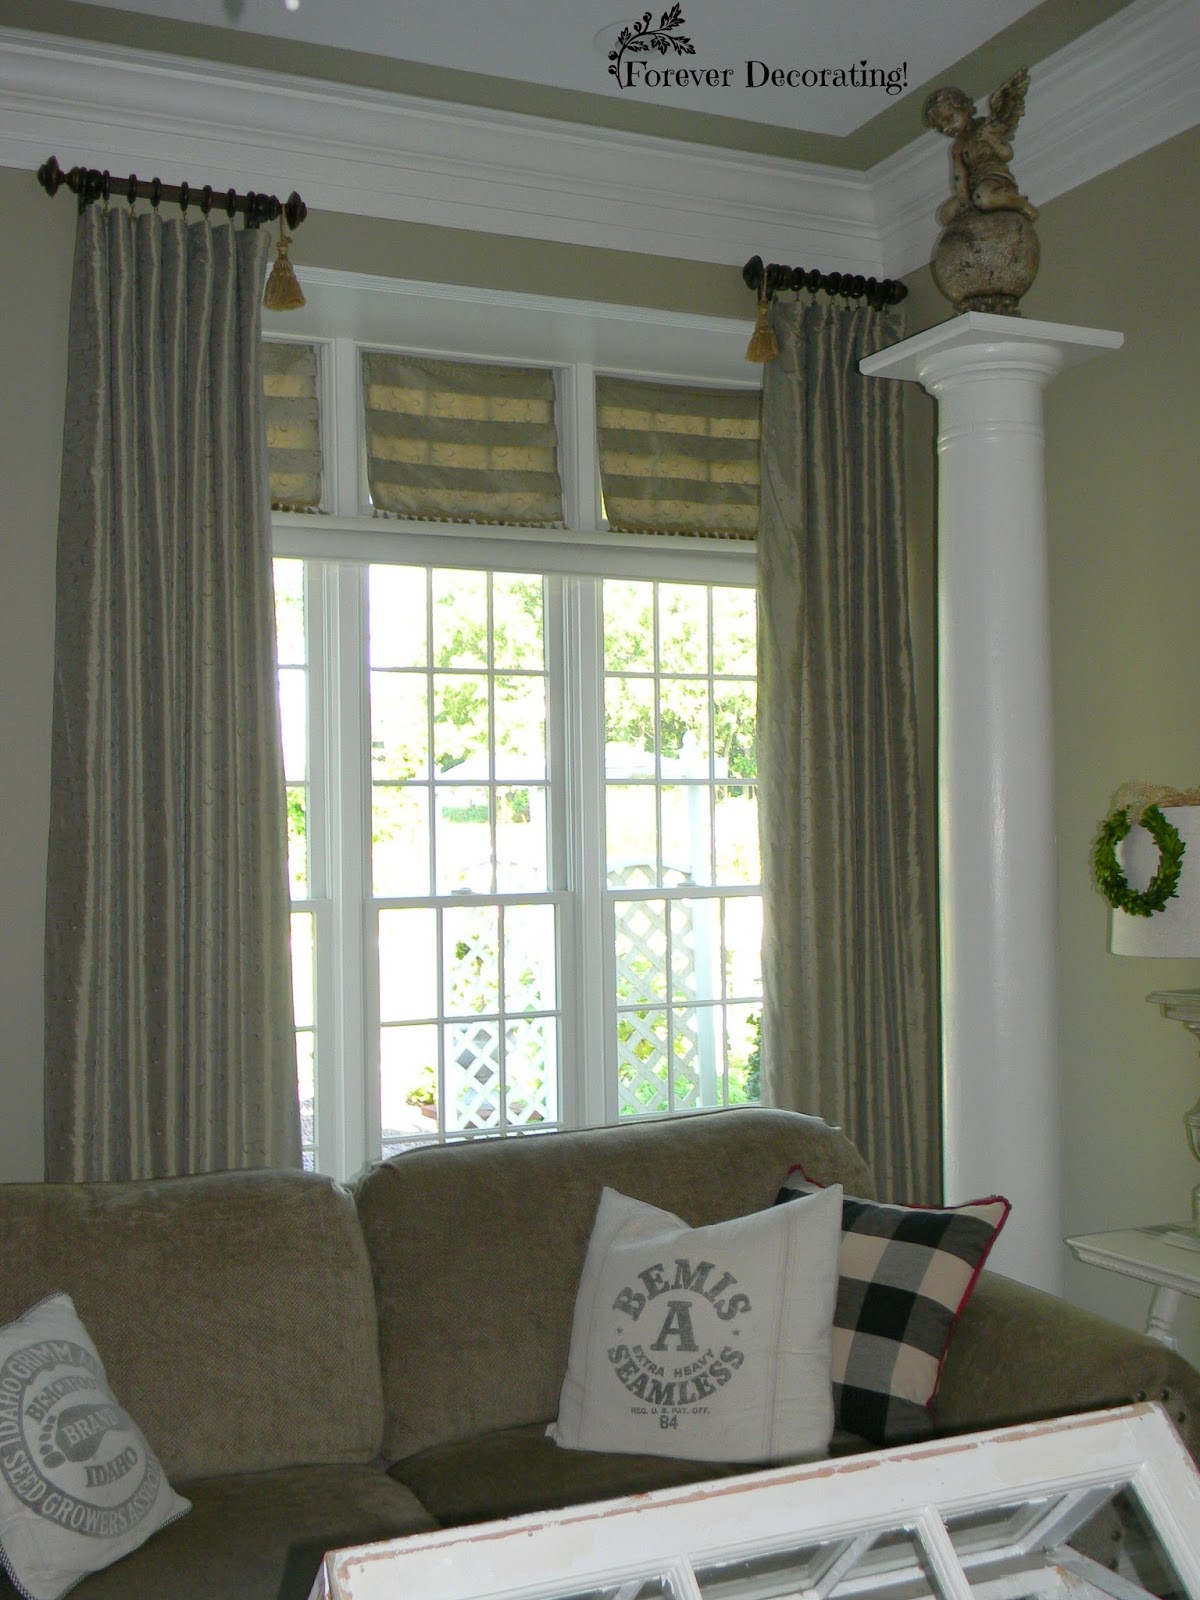 Forever Decorating!: How I Solved Problems with My Curtain